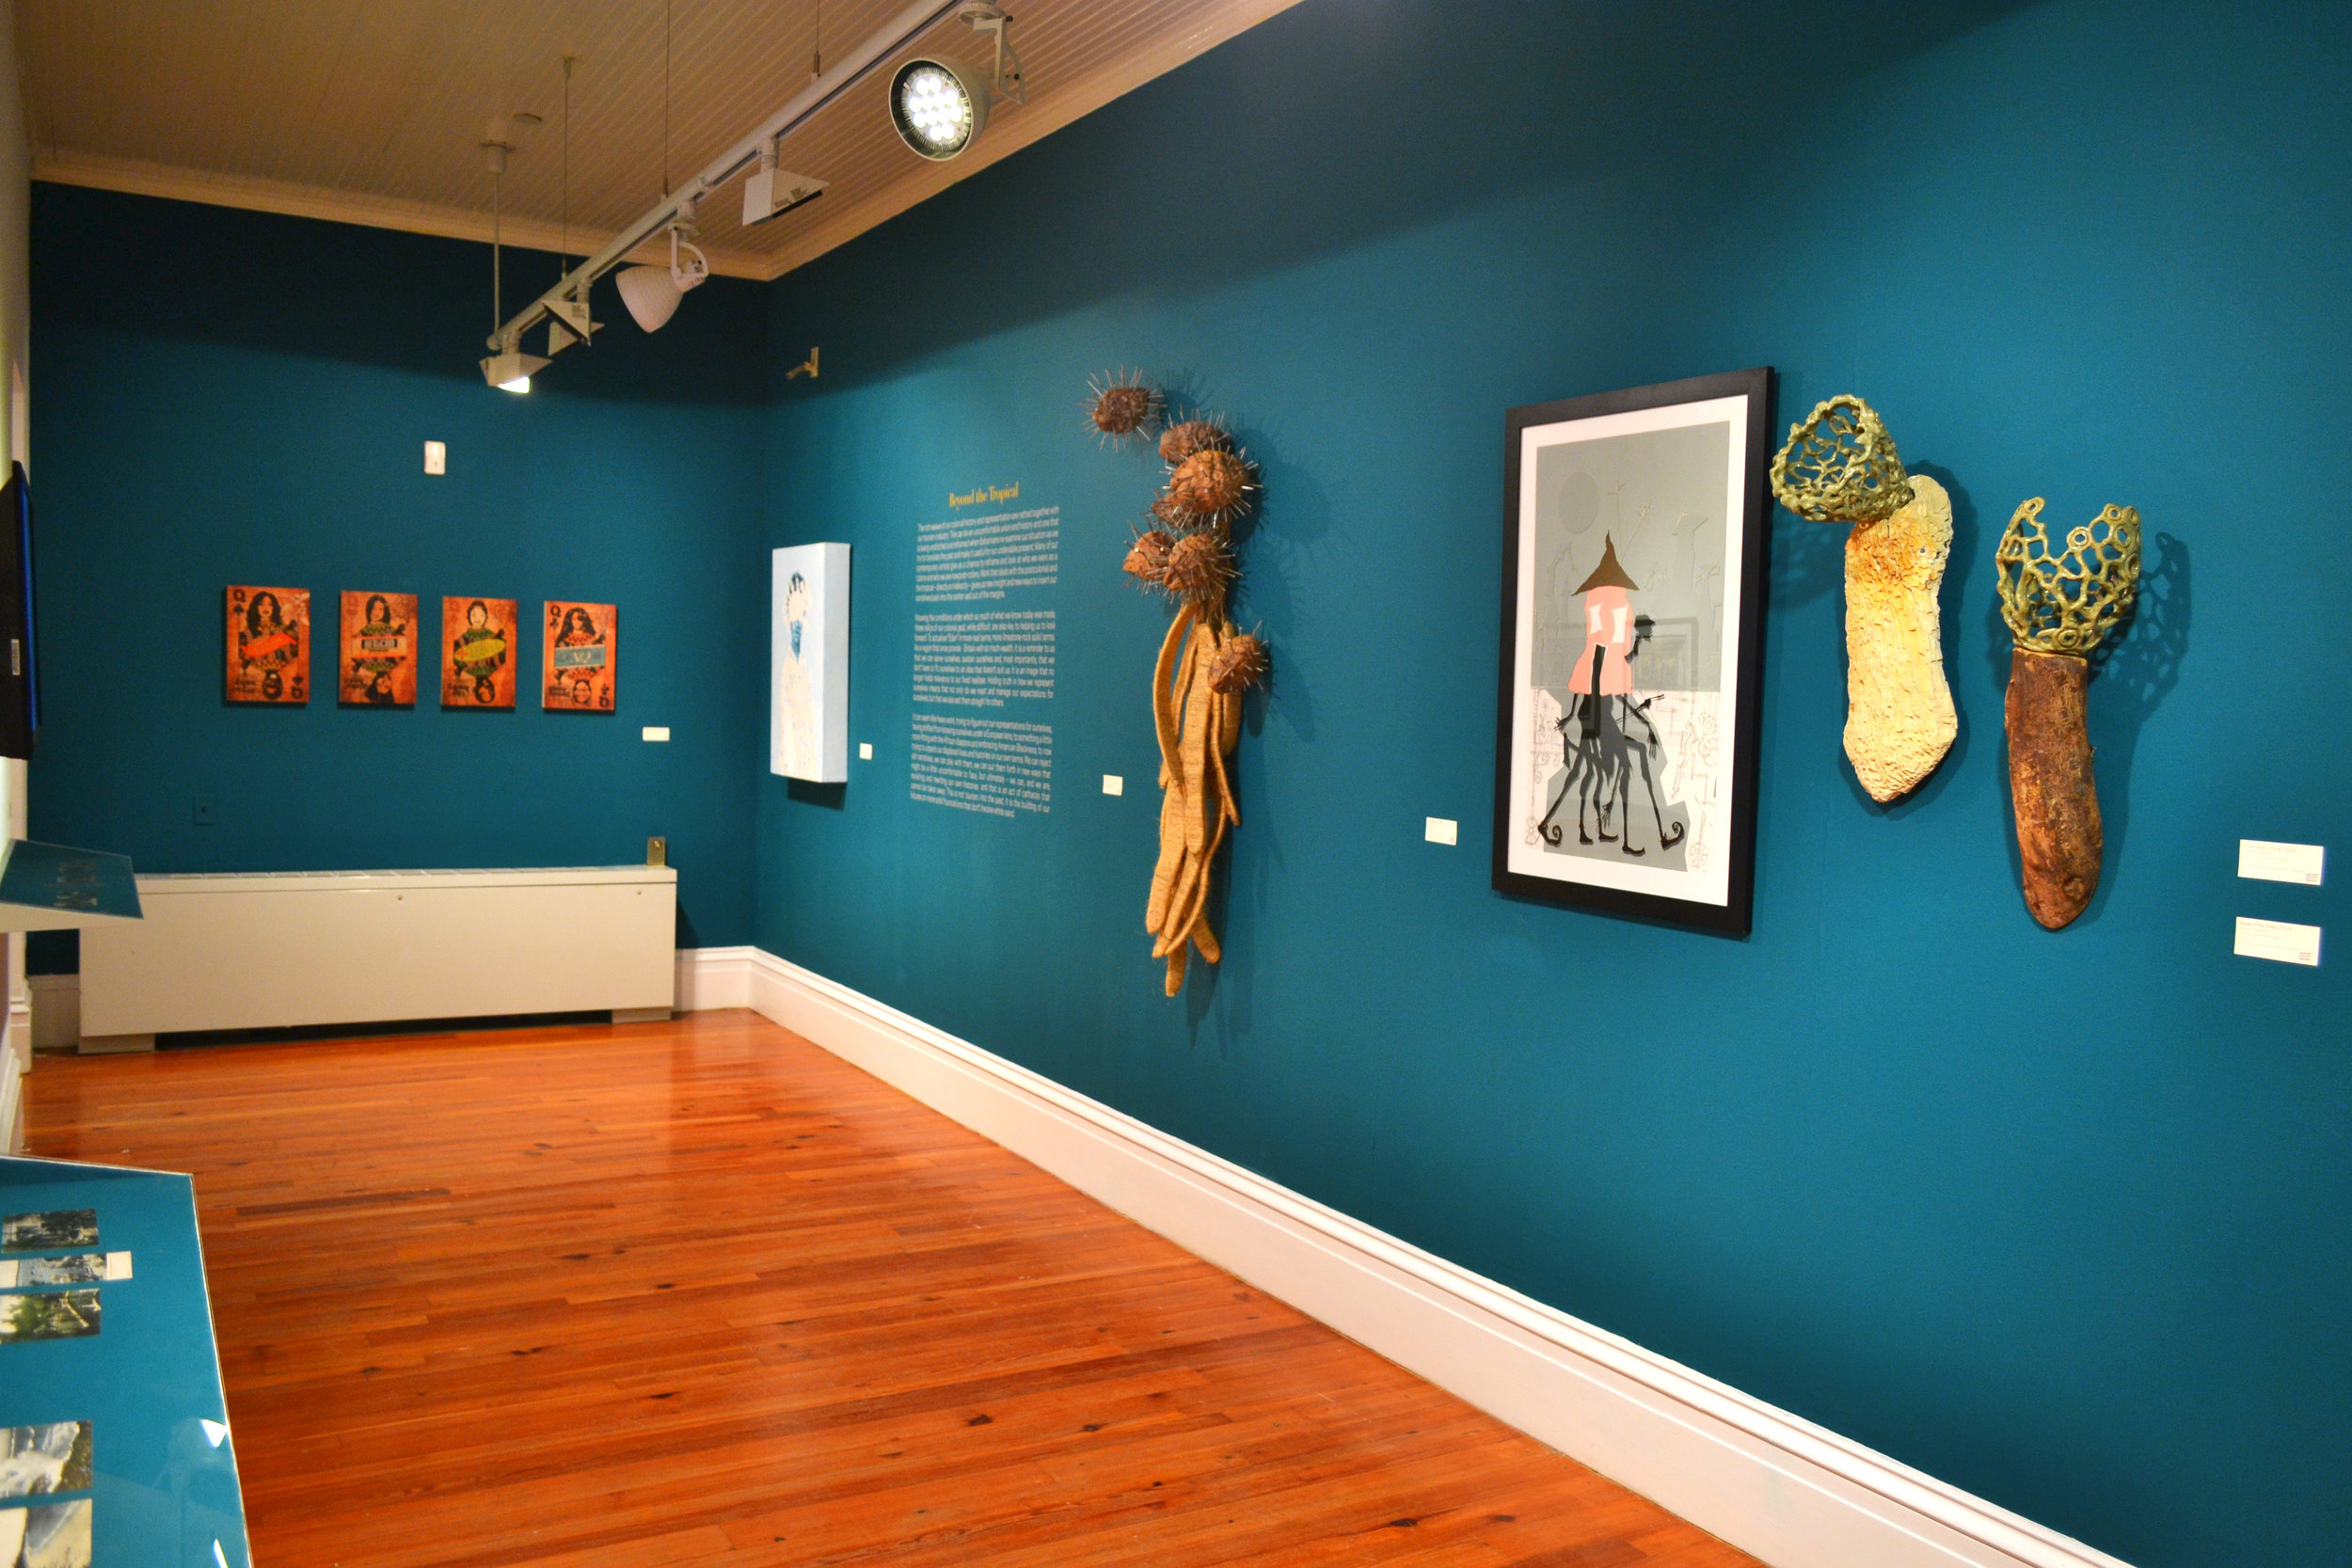 """Installation shot of Lavar Munroe's """"The Migrant"""" (2008) as seen in the current Permanent Exhibition, """"Revisiting An Eye For the Tropics""""."""